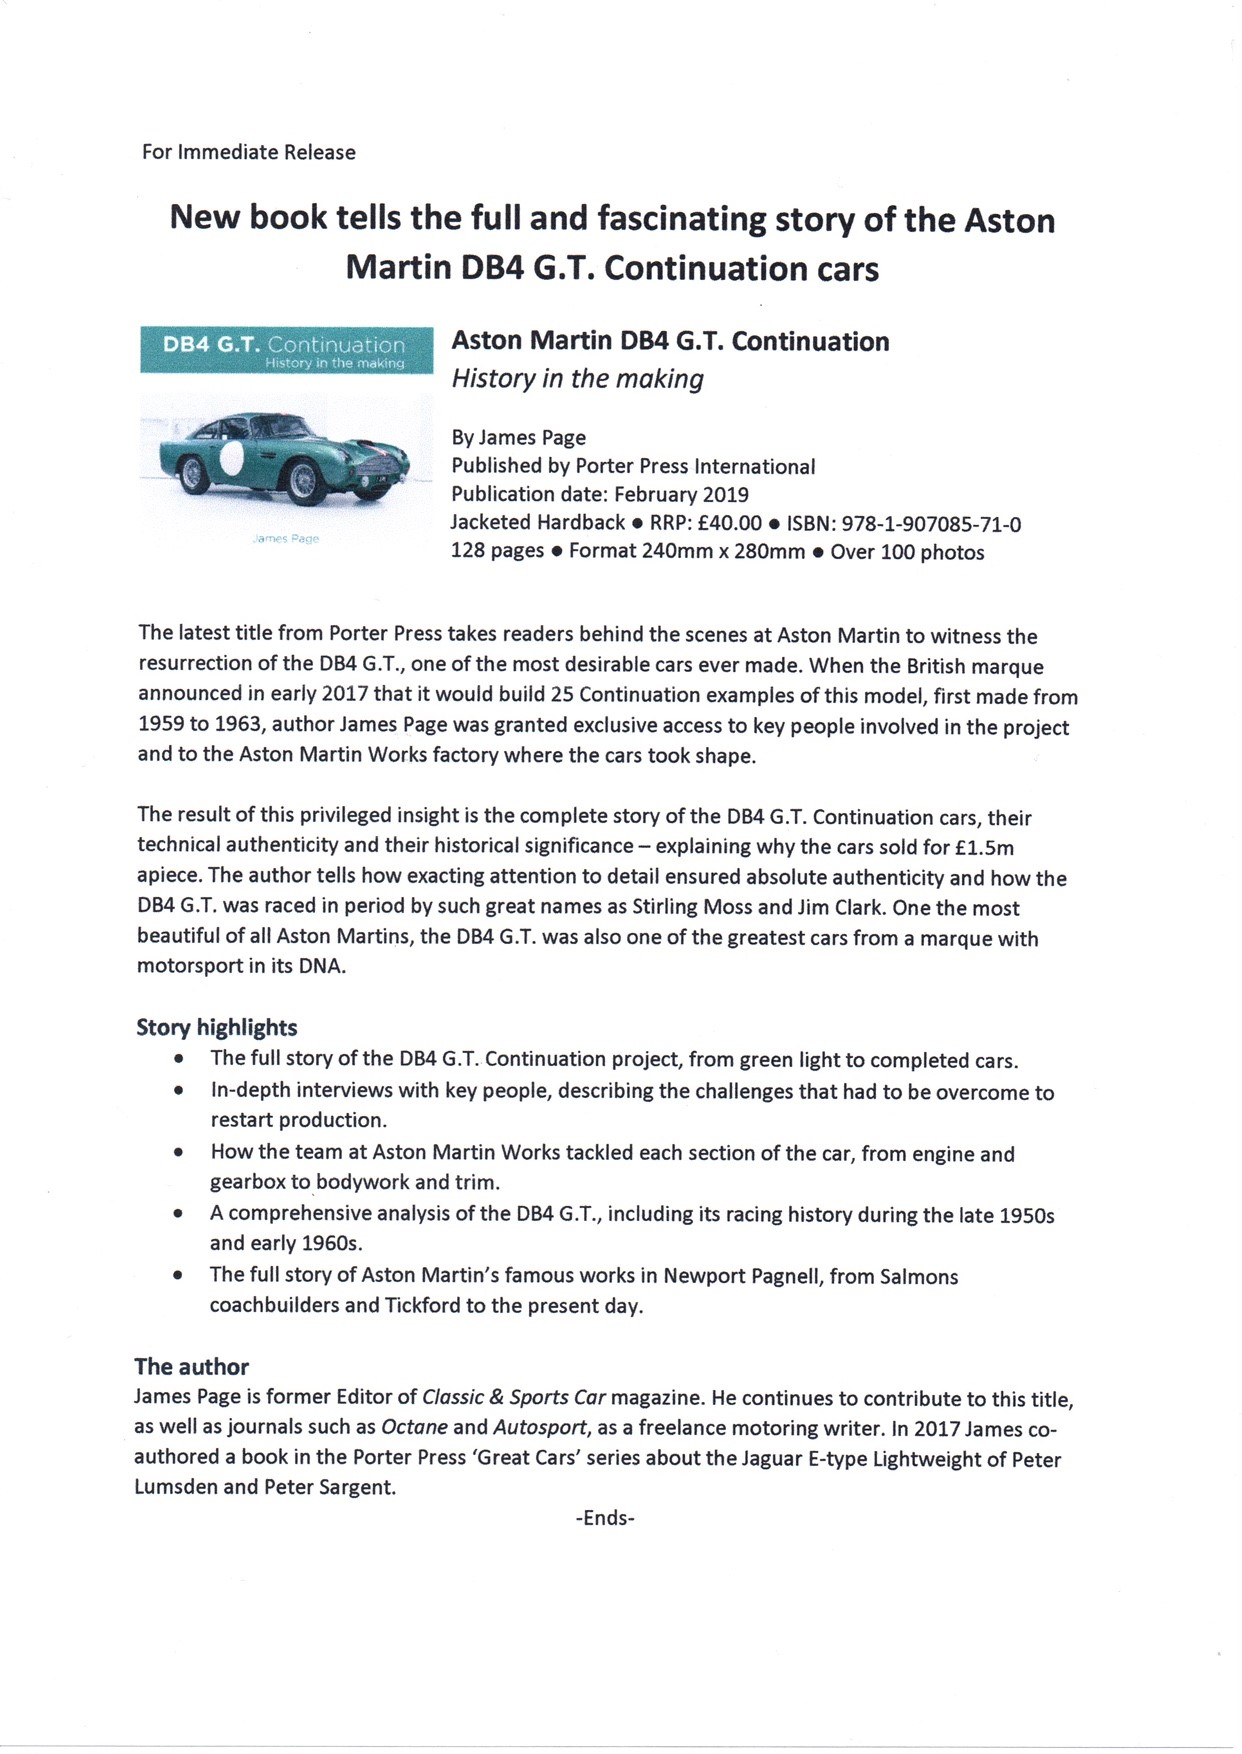 DB4 G.T. Continuation_02